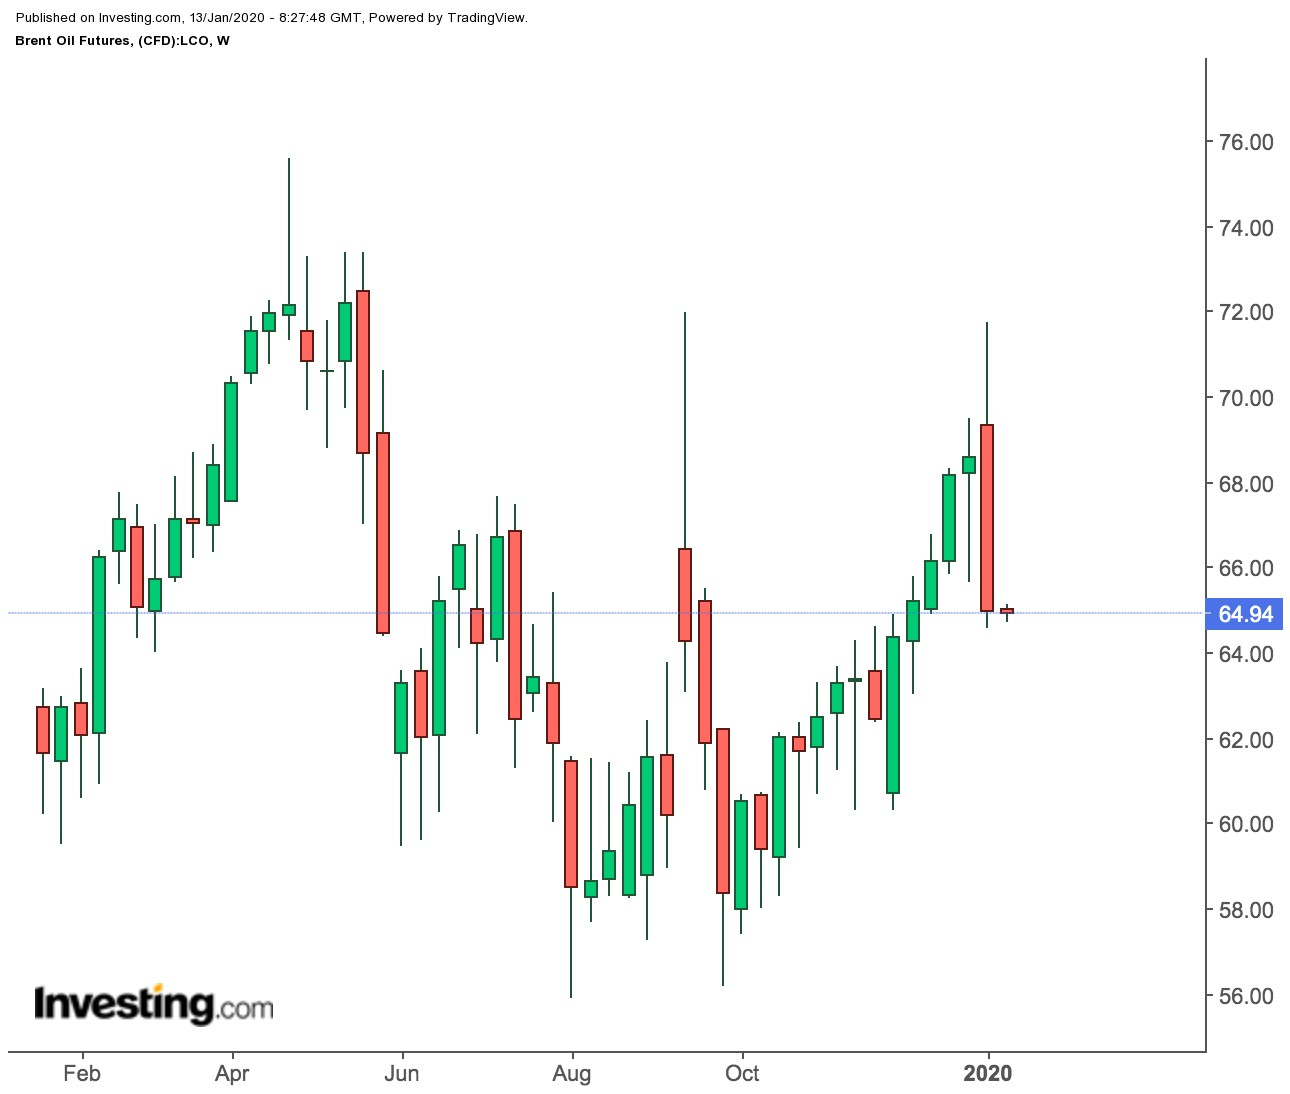 Brent Futures Weekly Price